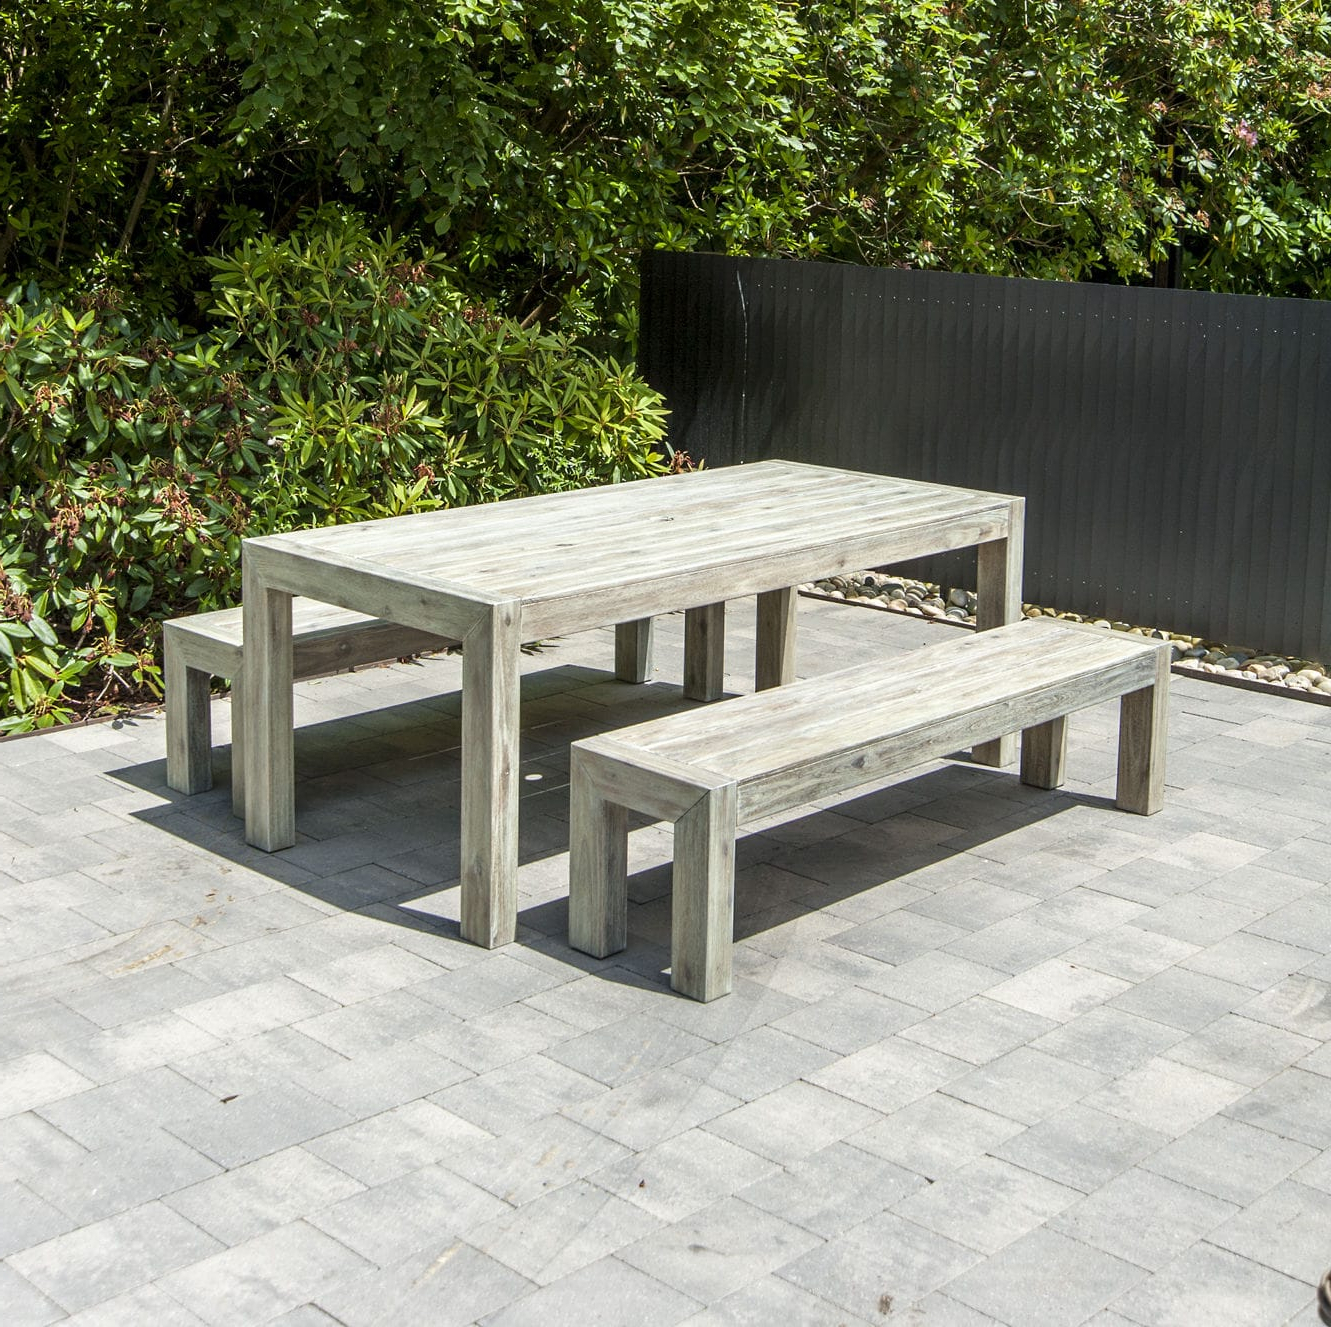 Wood Garden Benches Throughout Most Popular Garden Bench / Traditional / Acacia / Fsc Certified (View 27 of 30)